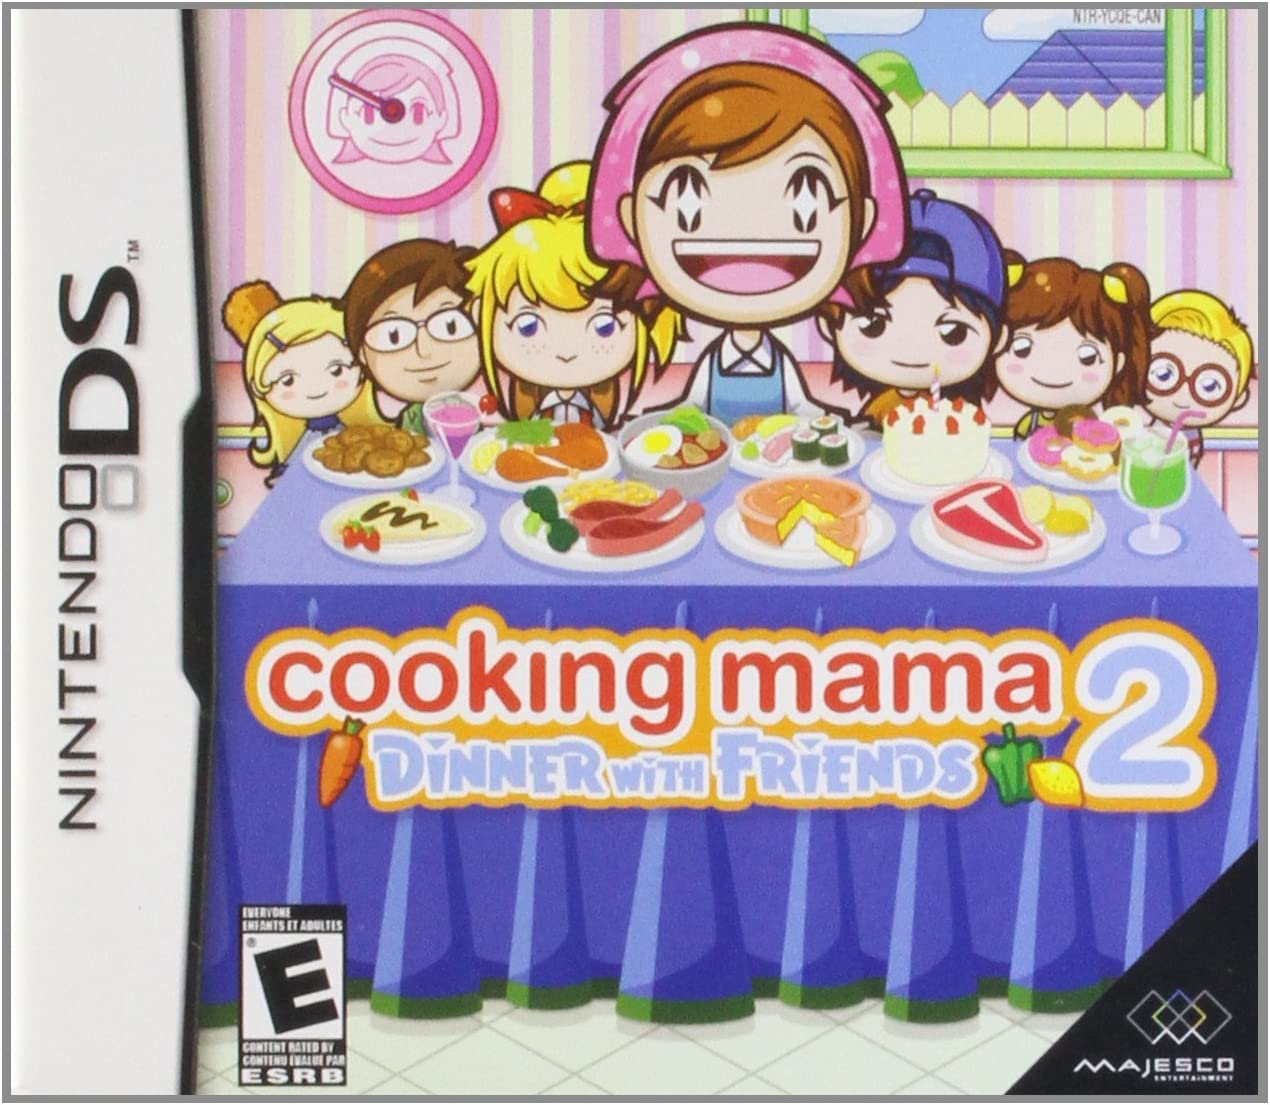 Amazoncom Cooking Mama 2 Dinner With Friends Nintendo DS